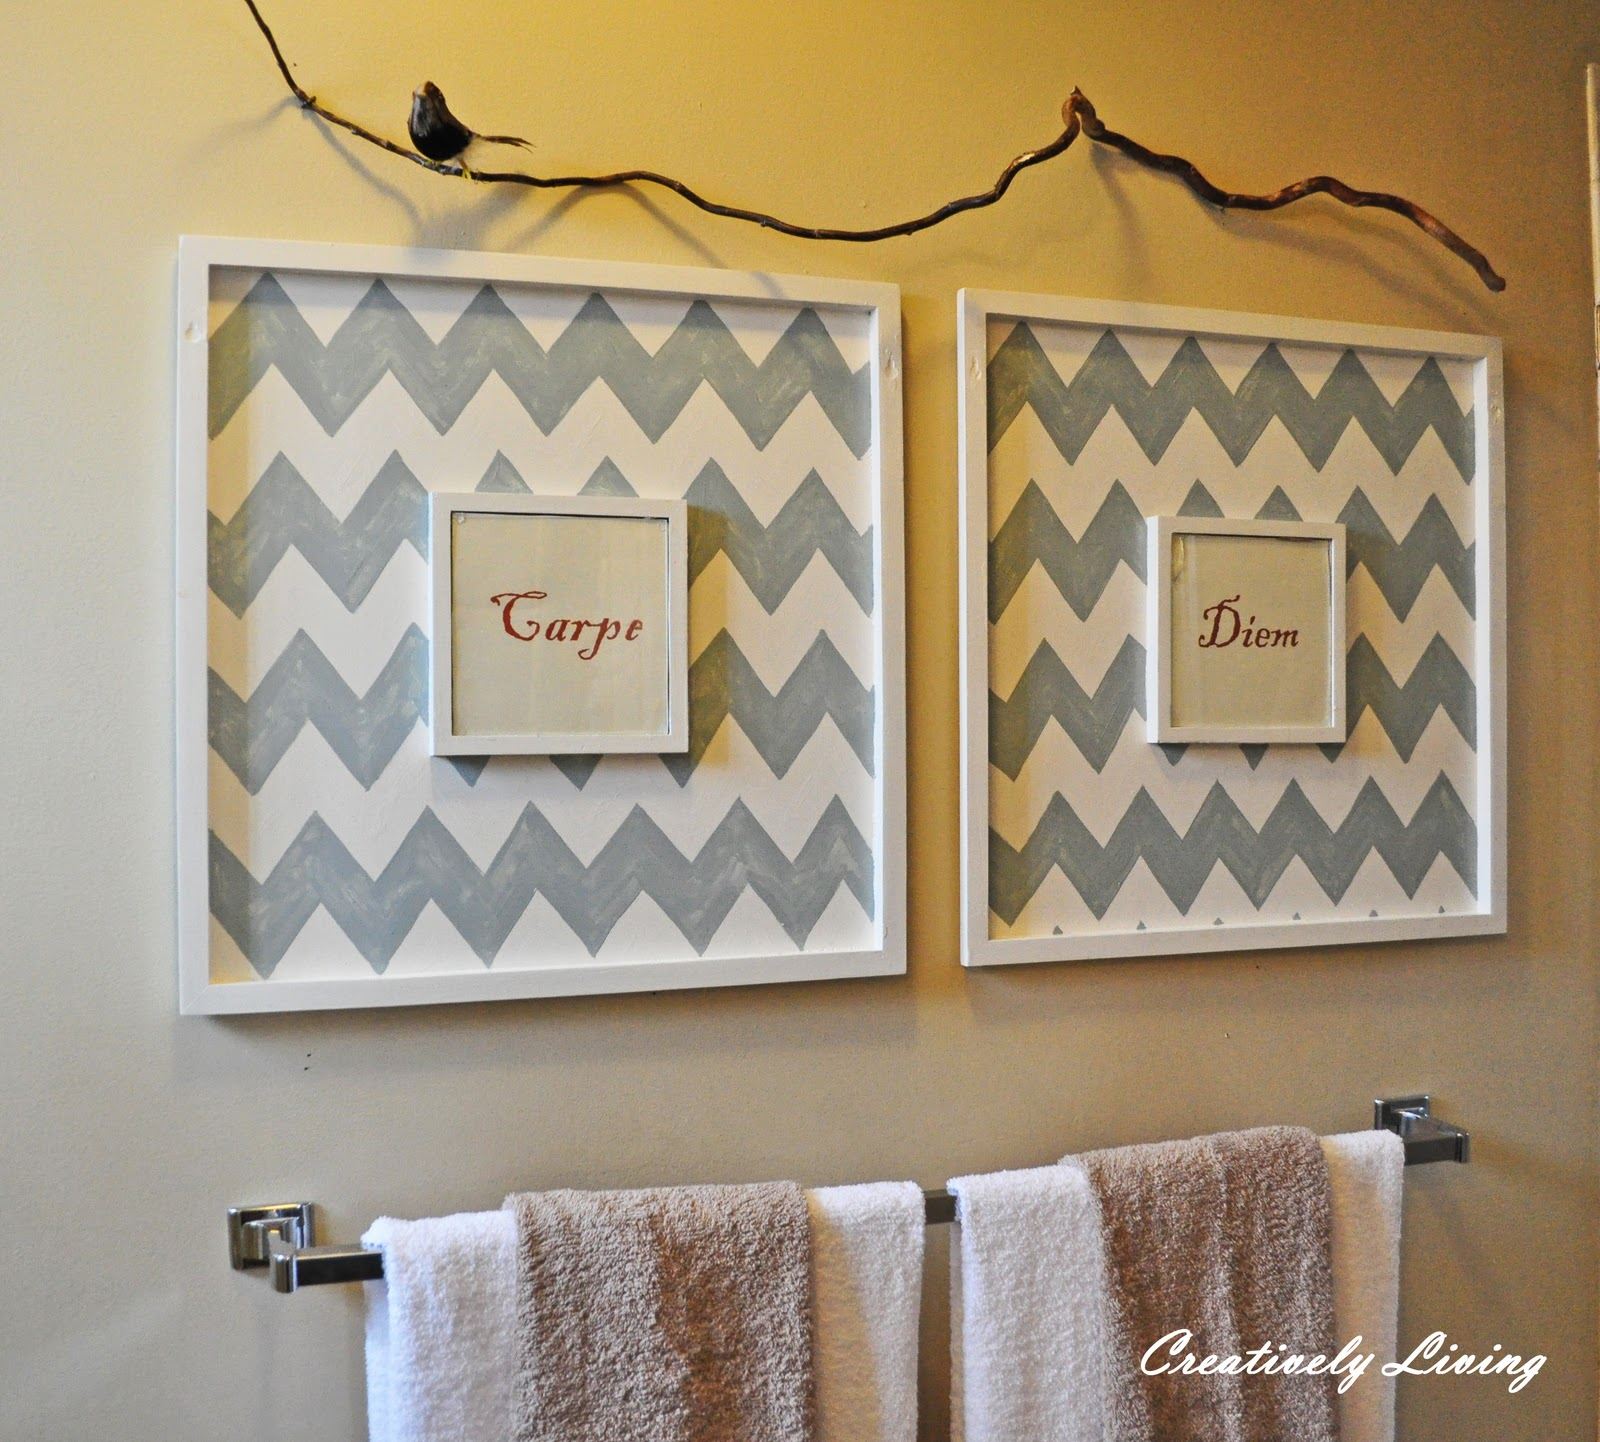 Bathroom wall art creatively living blog for Wall hanging images